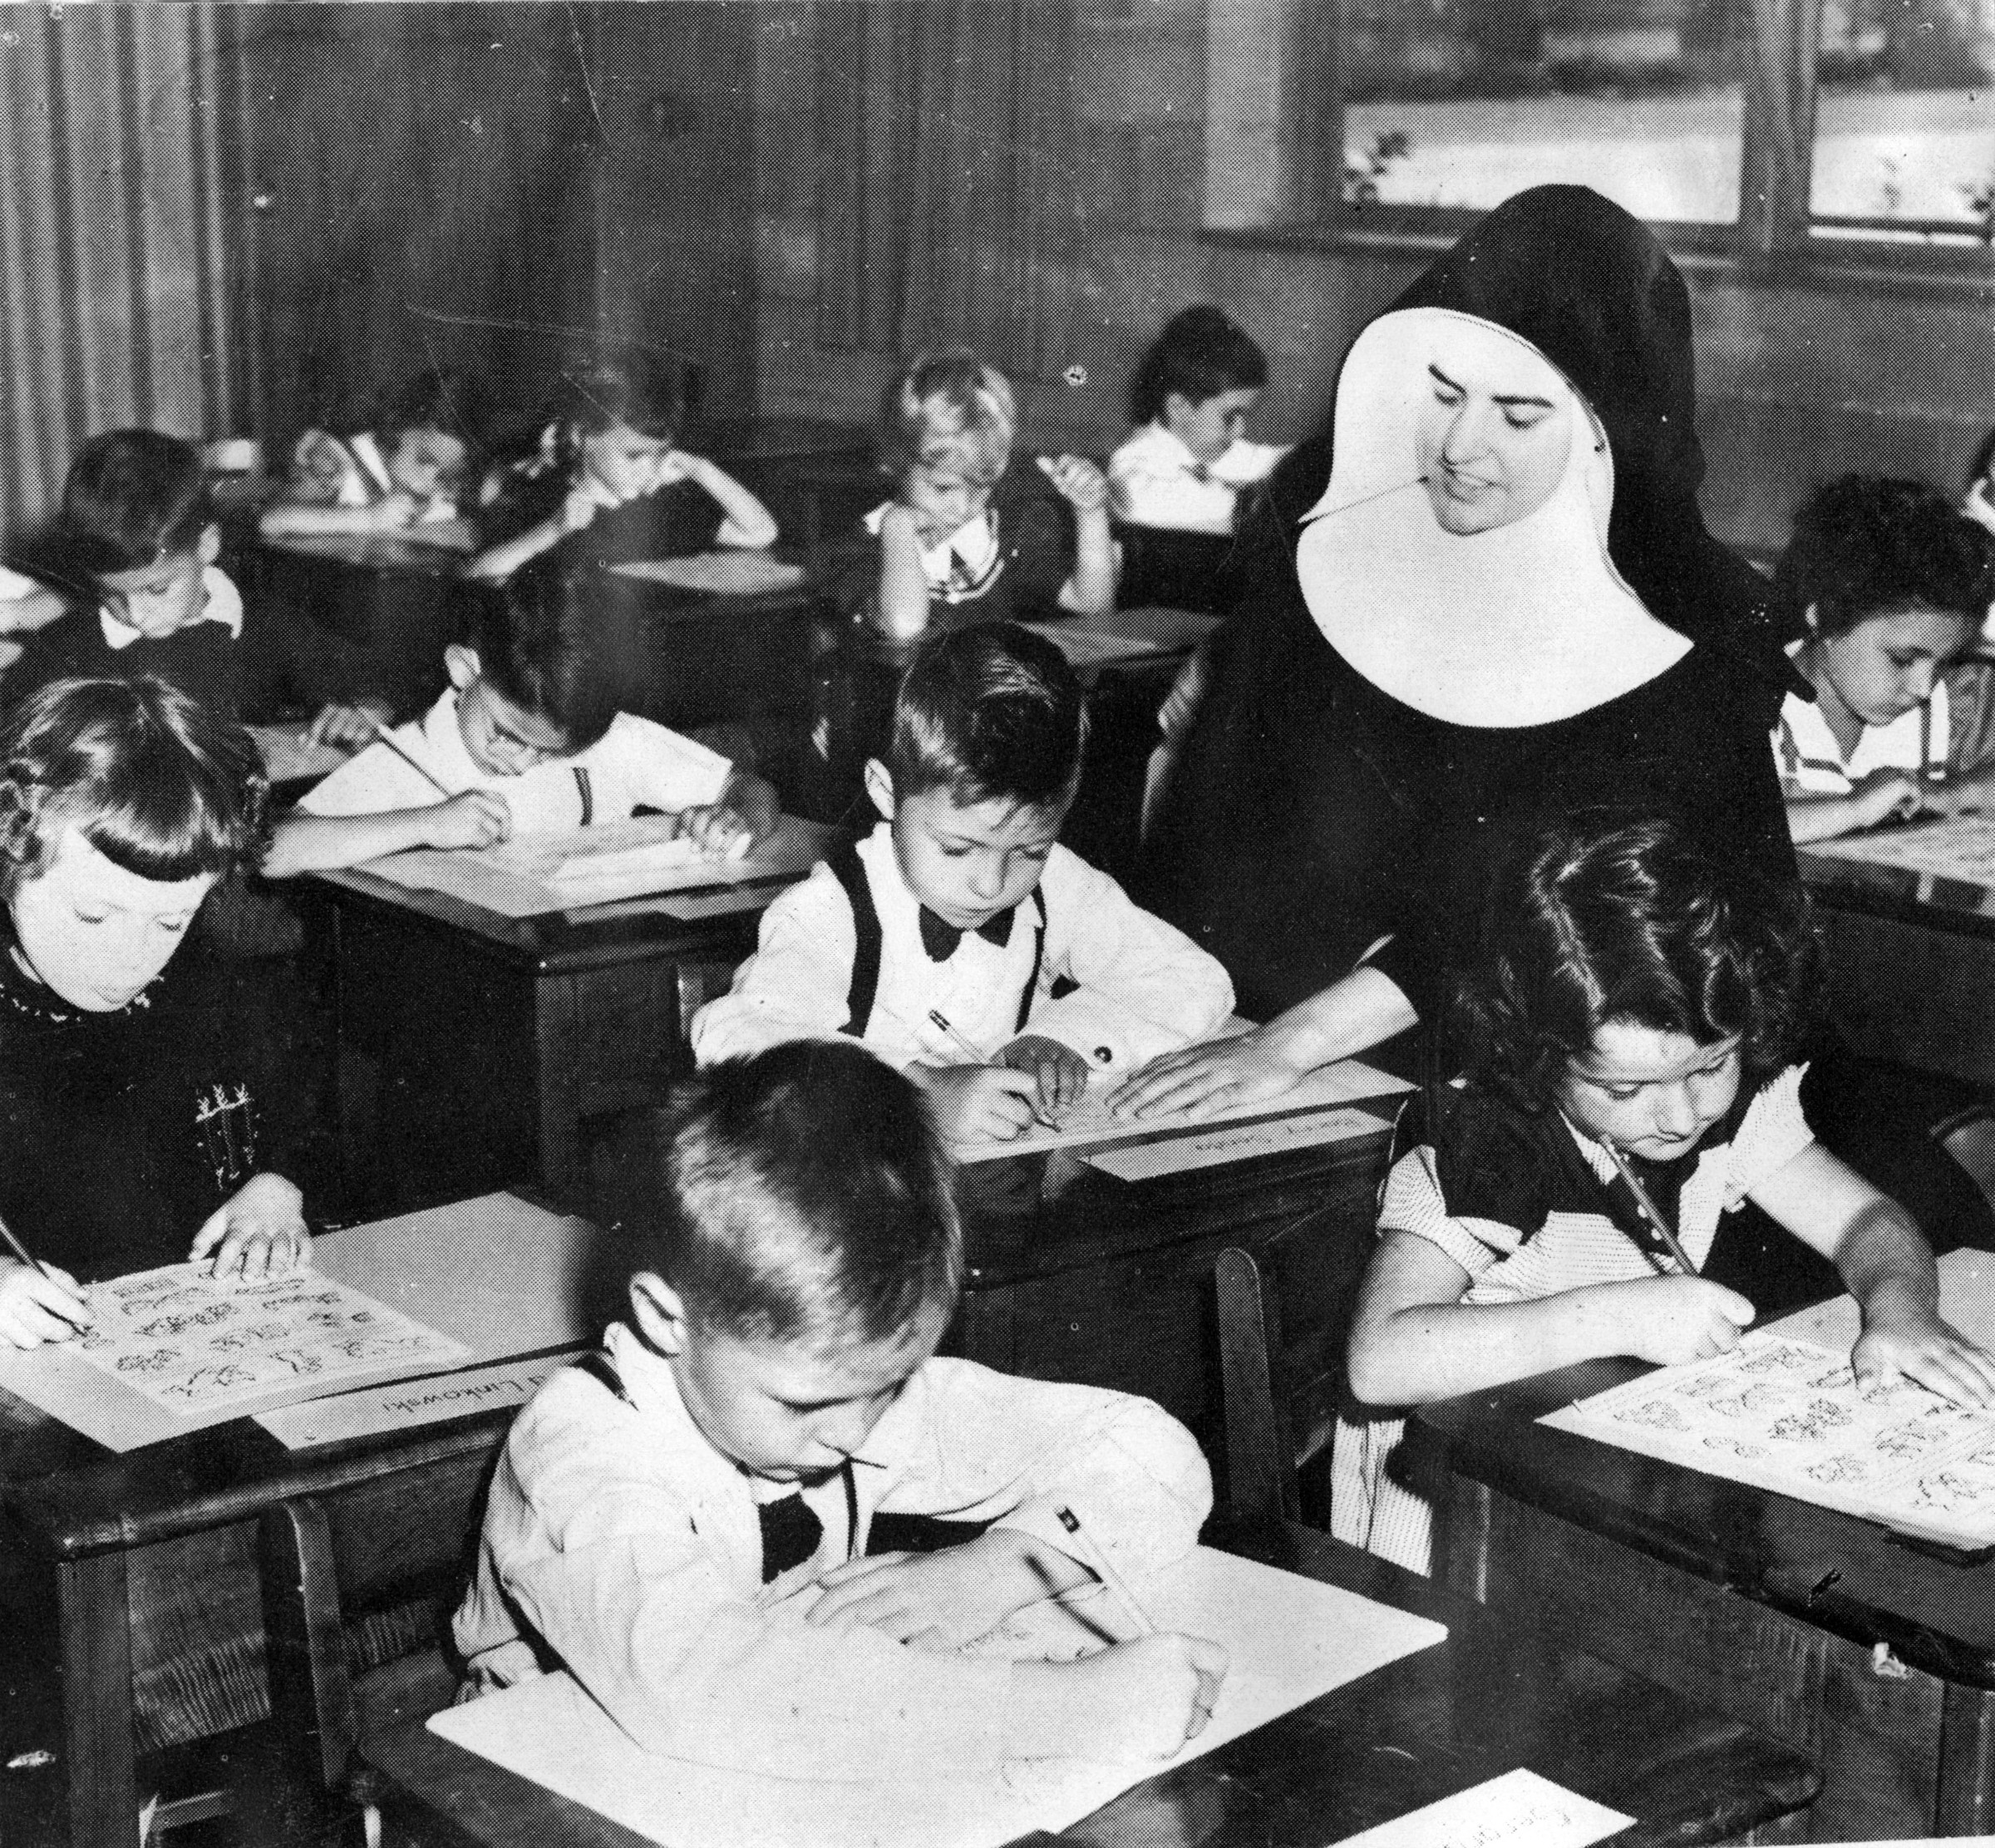 Sister Joyce Braun with pupils at St. Mary's School, c. 1950.